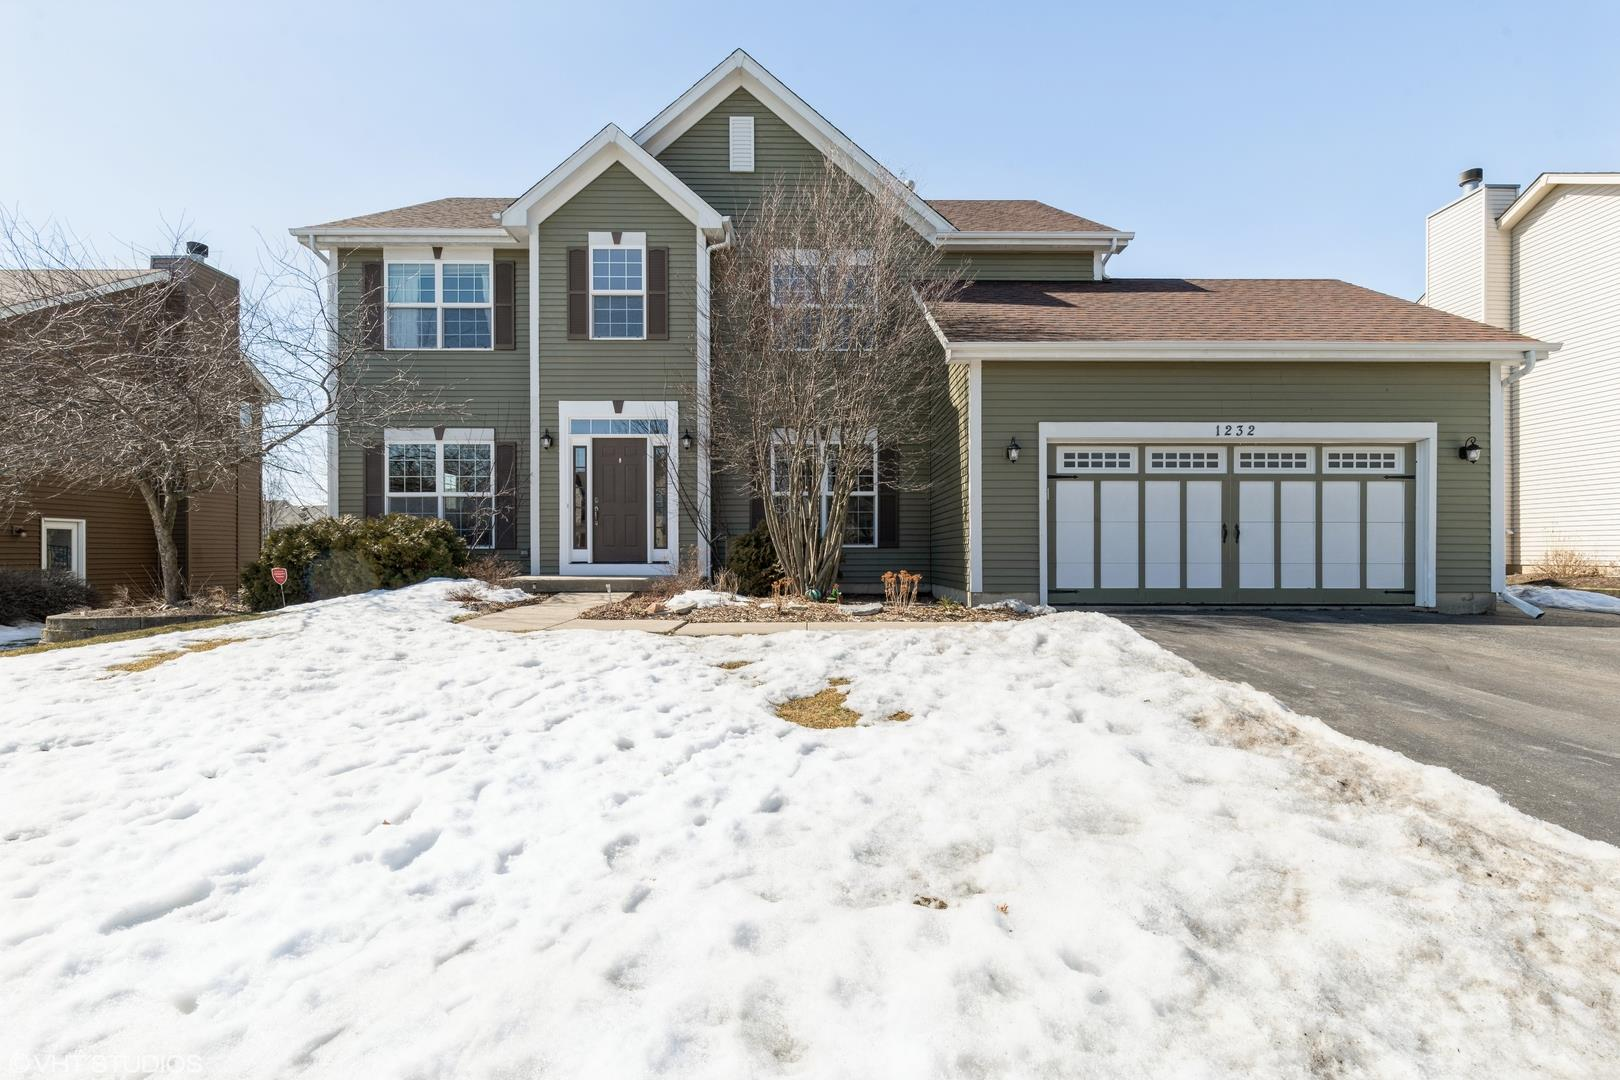 1232 Sandalwood Lane, Crystal Lake, IL 60014 - #: 11012084